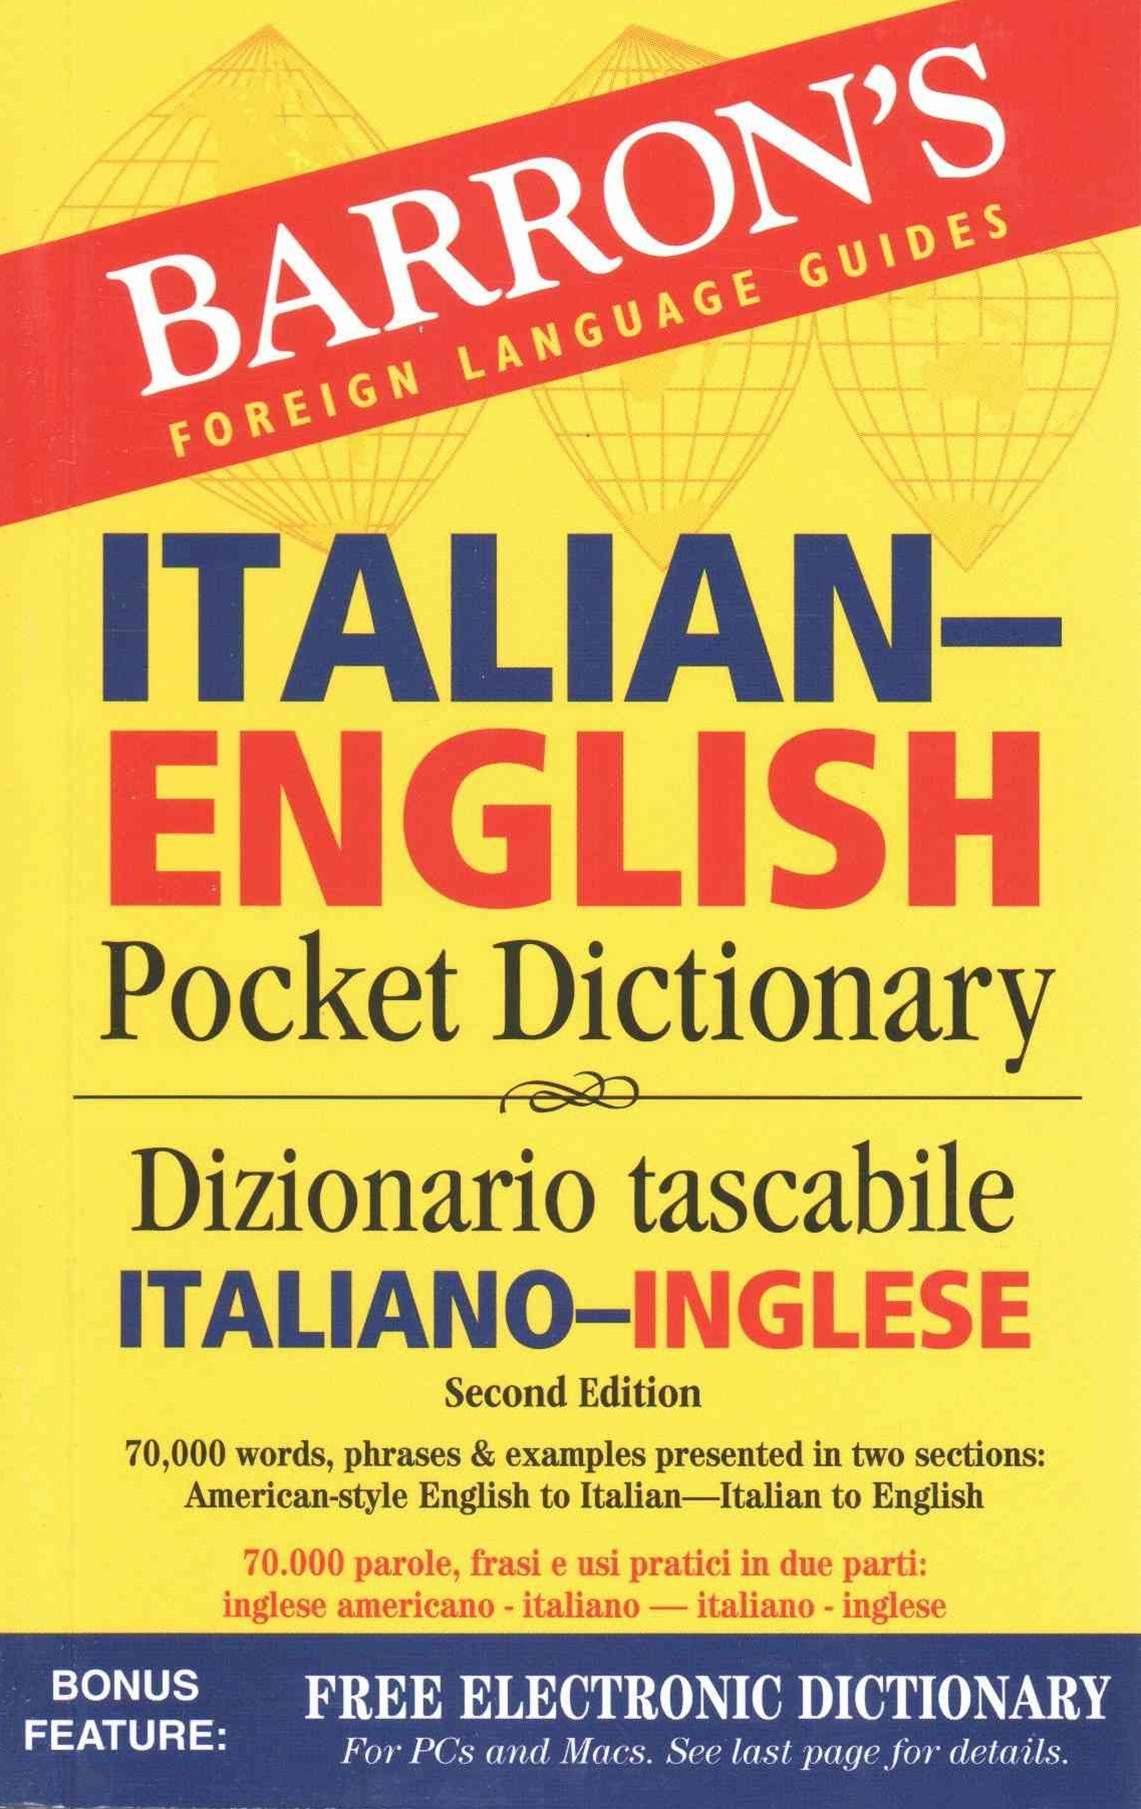 Barron's Italian-English Pocket Dictionary